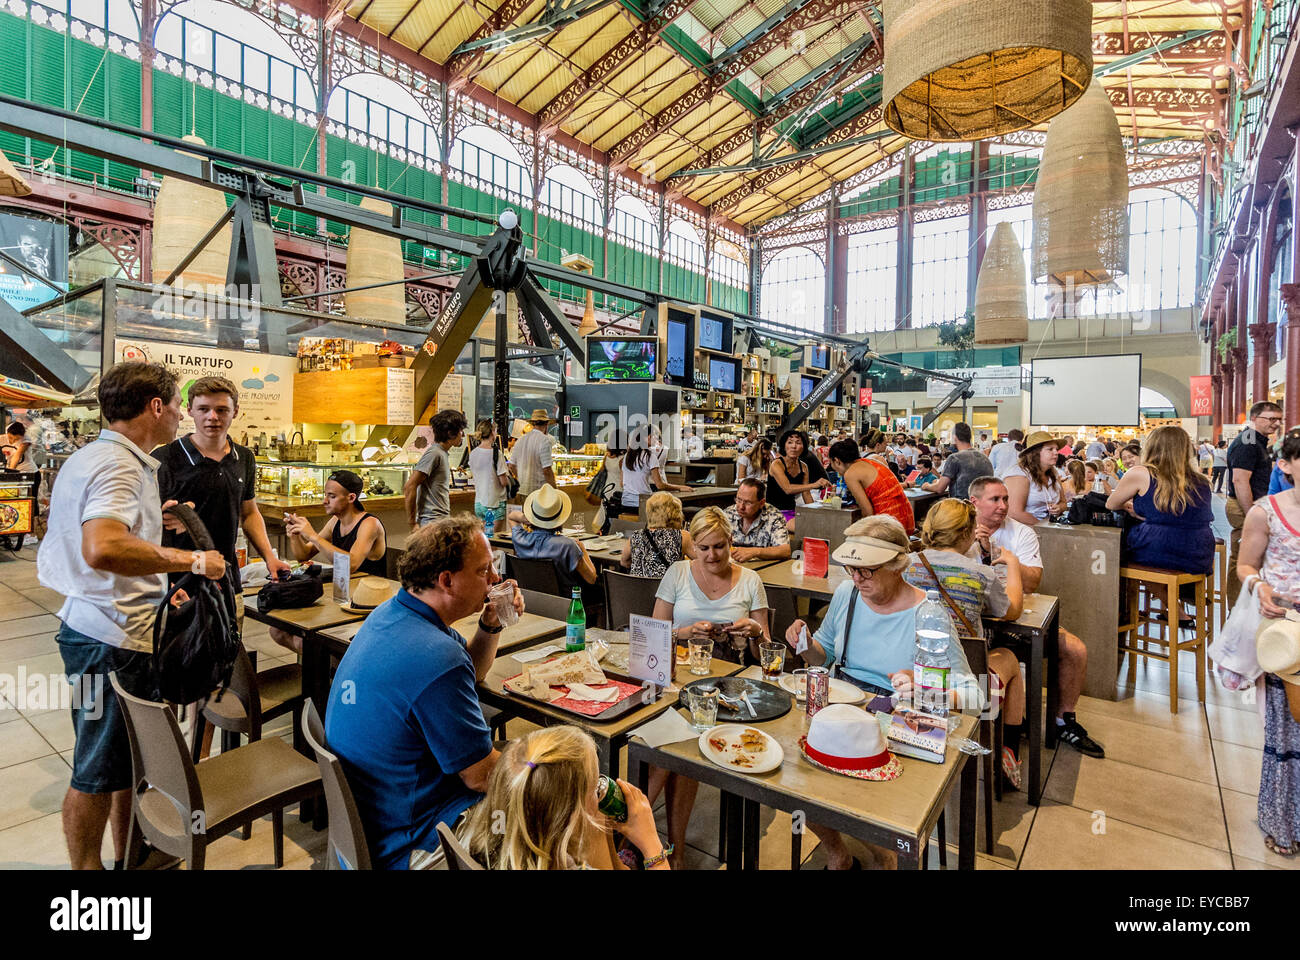 Mercato Centrale indoor market. Florence, Italy. - Stock Image